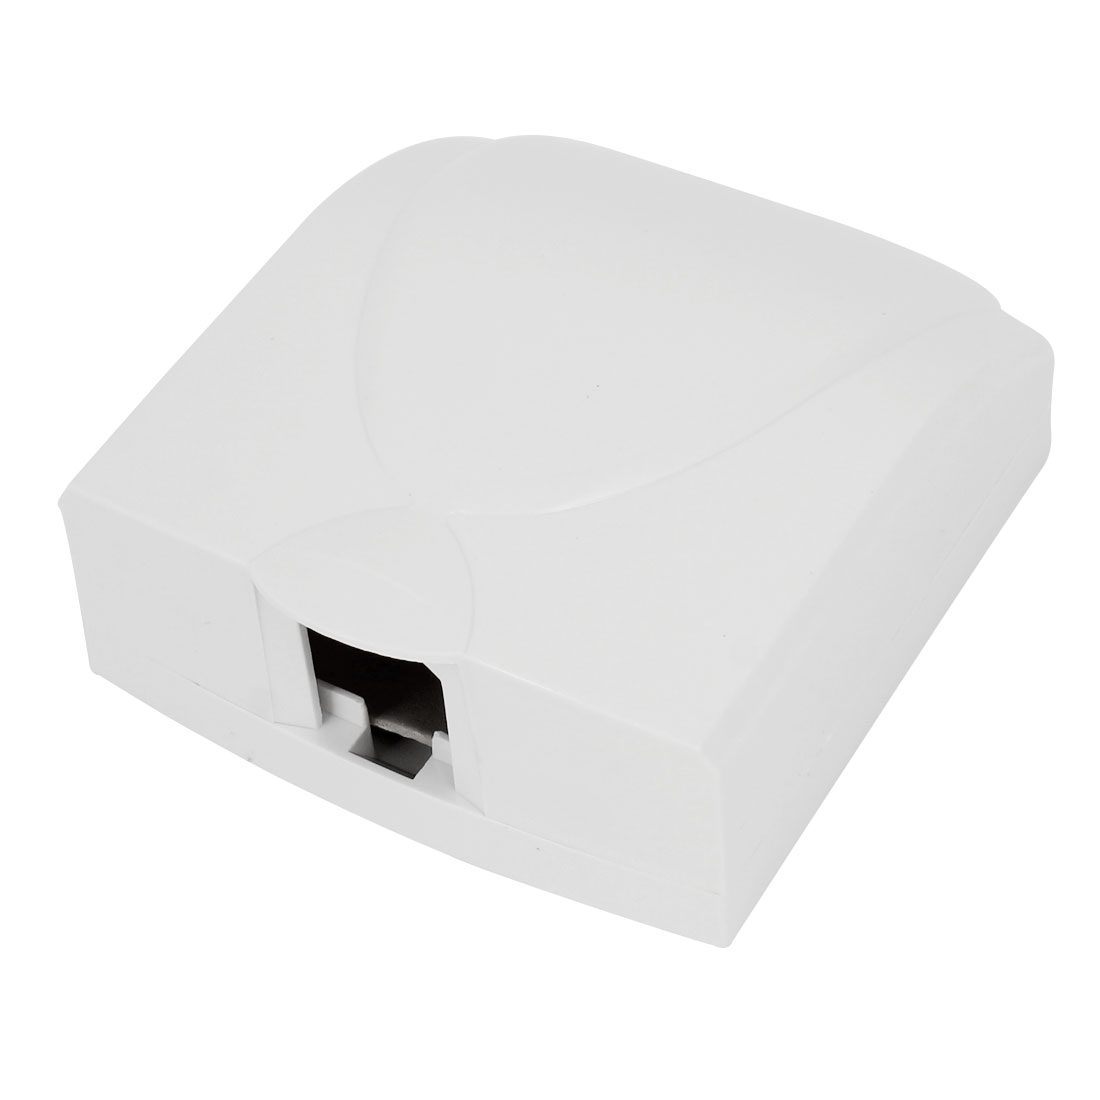 Bathroom Wall Switch Protector Flip Cap White Plastic Waterproof Cover